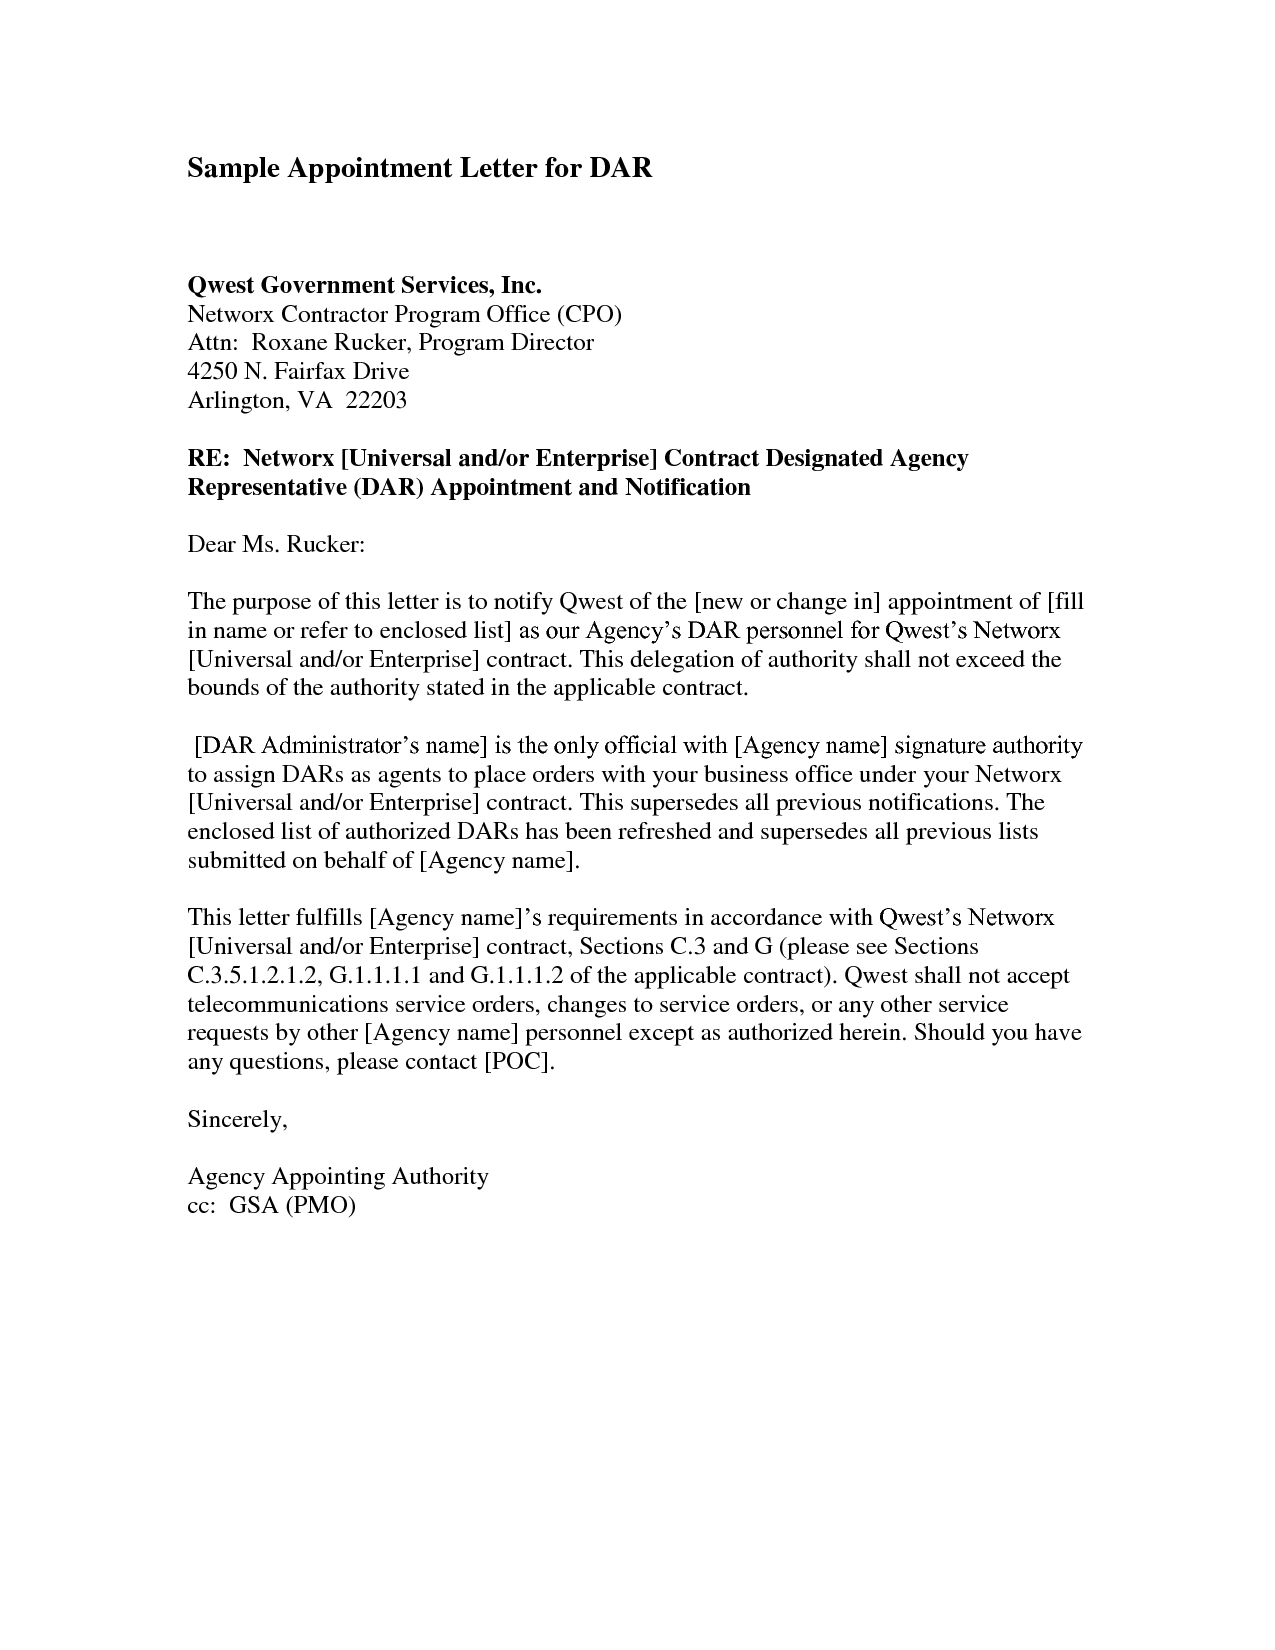 Dentist Appointment Letter Template - Trustee Appointment Letter Director Trustee is Appointed or